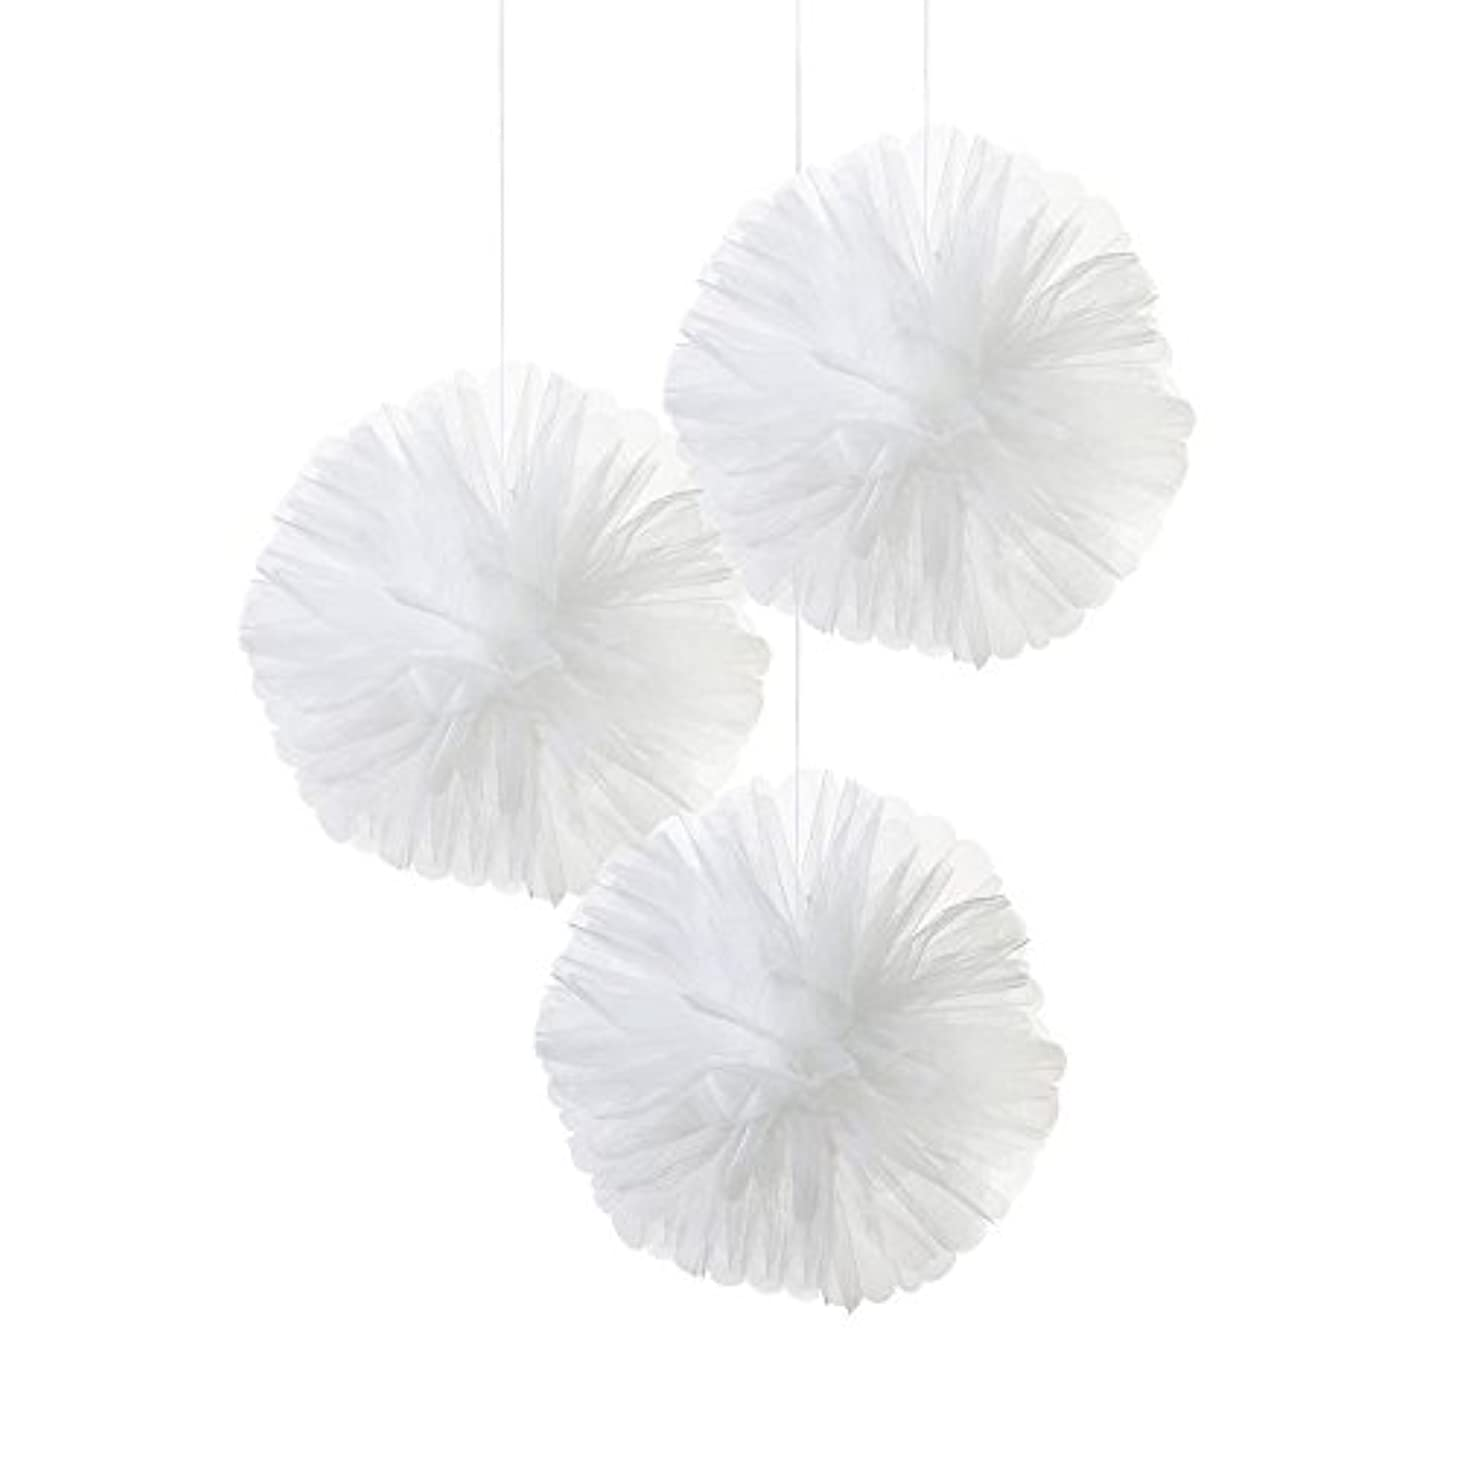 Talking Tables Modern Romance Tulle Pom Pom Hanging Décor for a Wedding or Celebration, White (3 Pack)